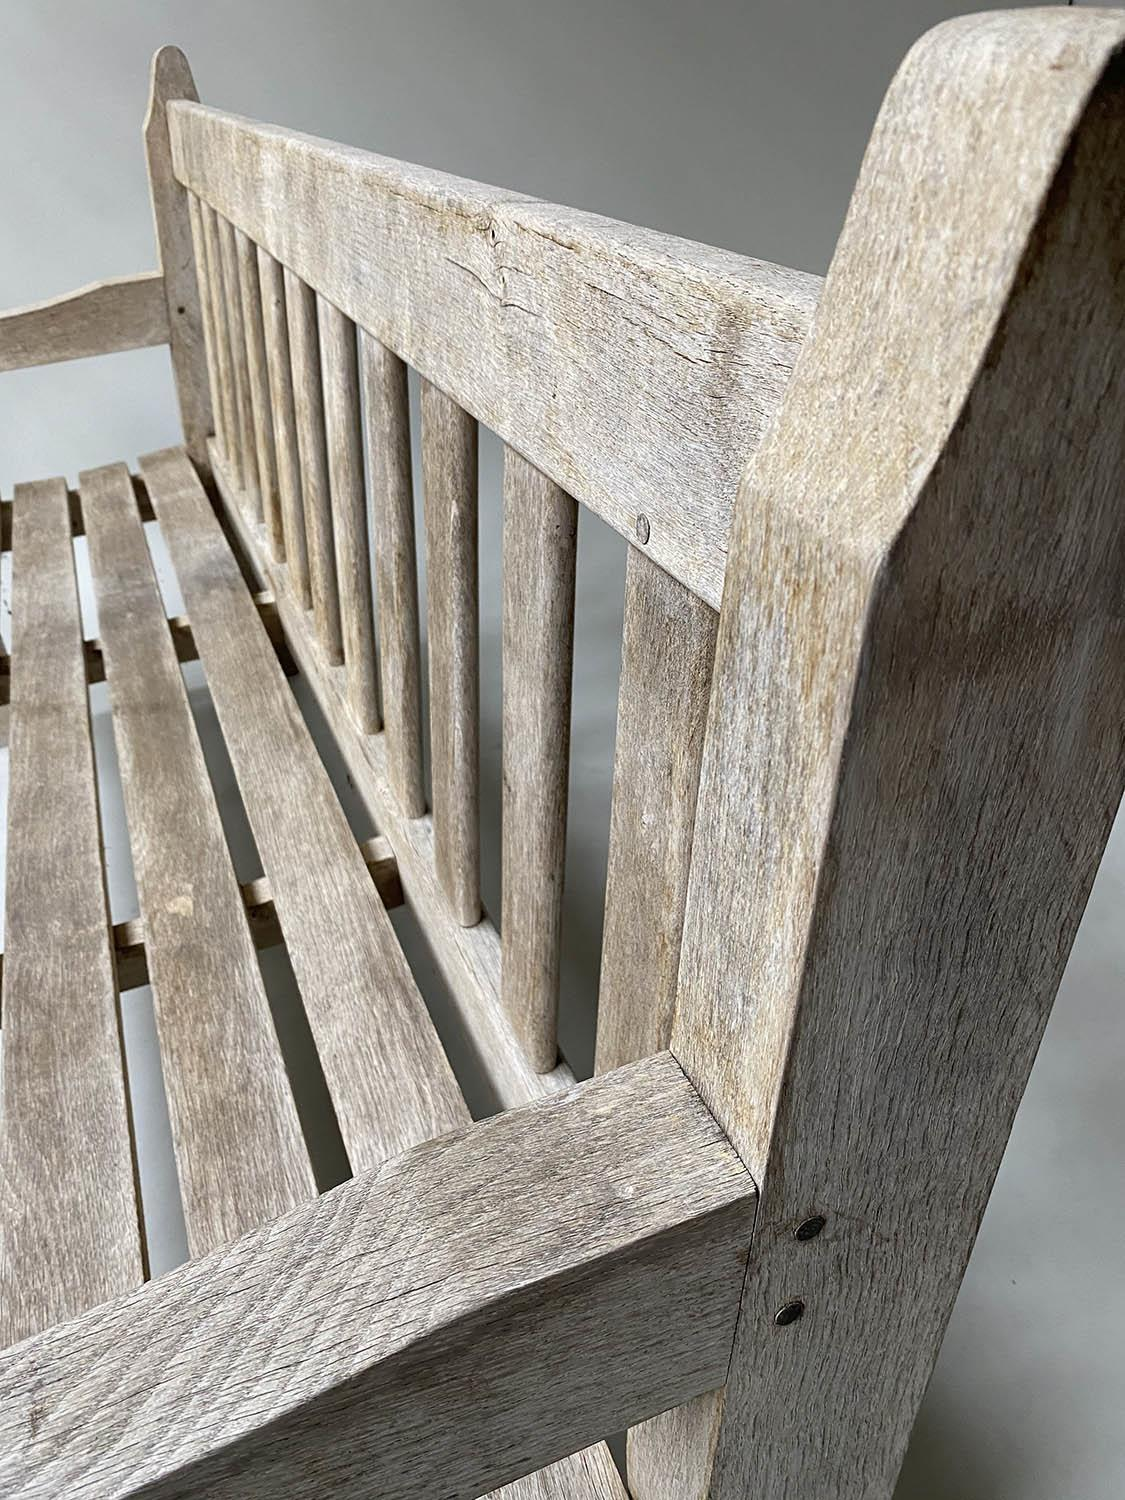 ENGLISH GARDEN BENCH, weathered English oak of substantial and slatted construction, 168cm W. - Image 4 of 8